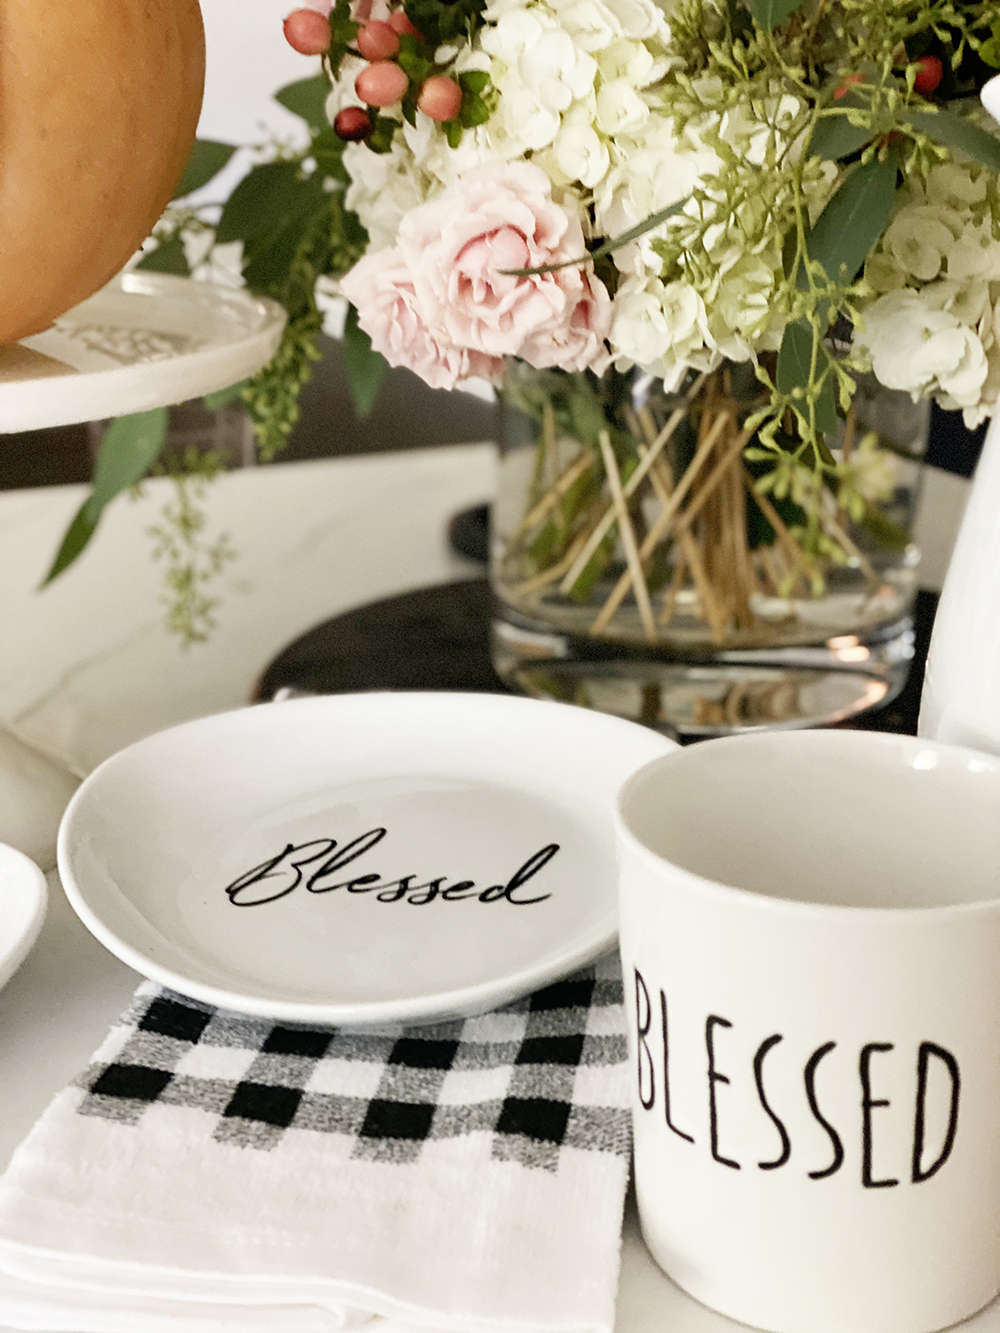 Affordable Fall Front Porch and Tabletop Decor Ideas buffalo plaid dish towel pioneer woman cake stand with pumpkin on top blessed coffee mug and plat